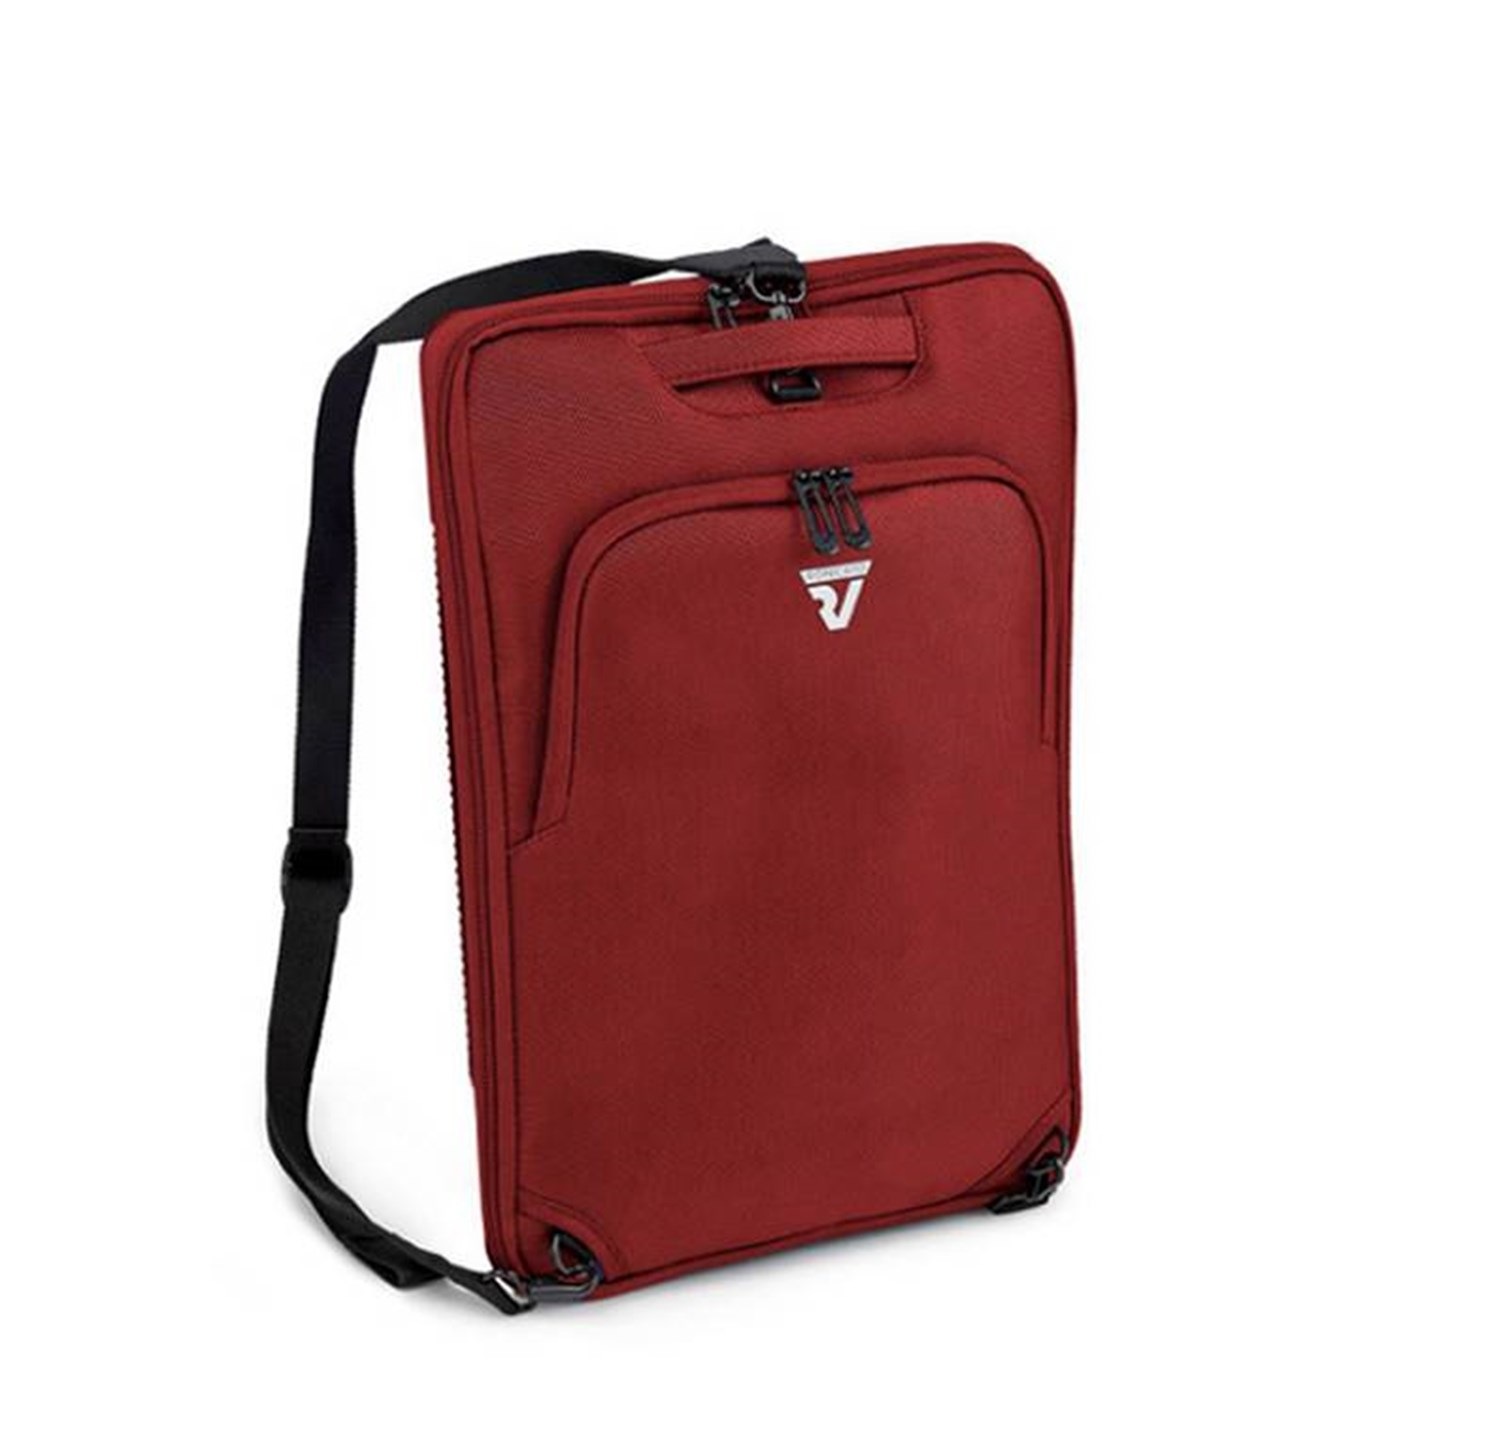 Roncato Bags Accessories Backpacks RED 955400